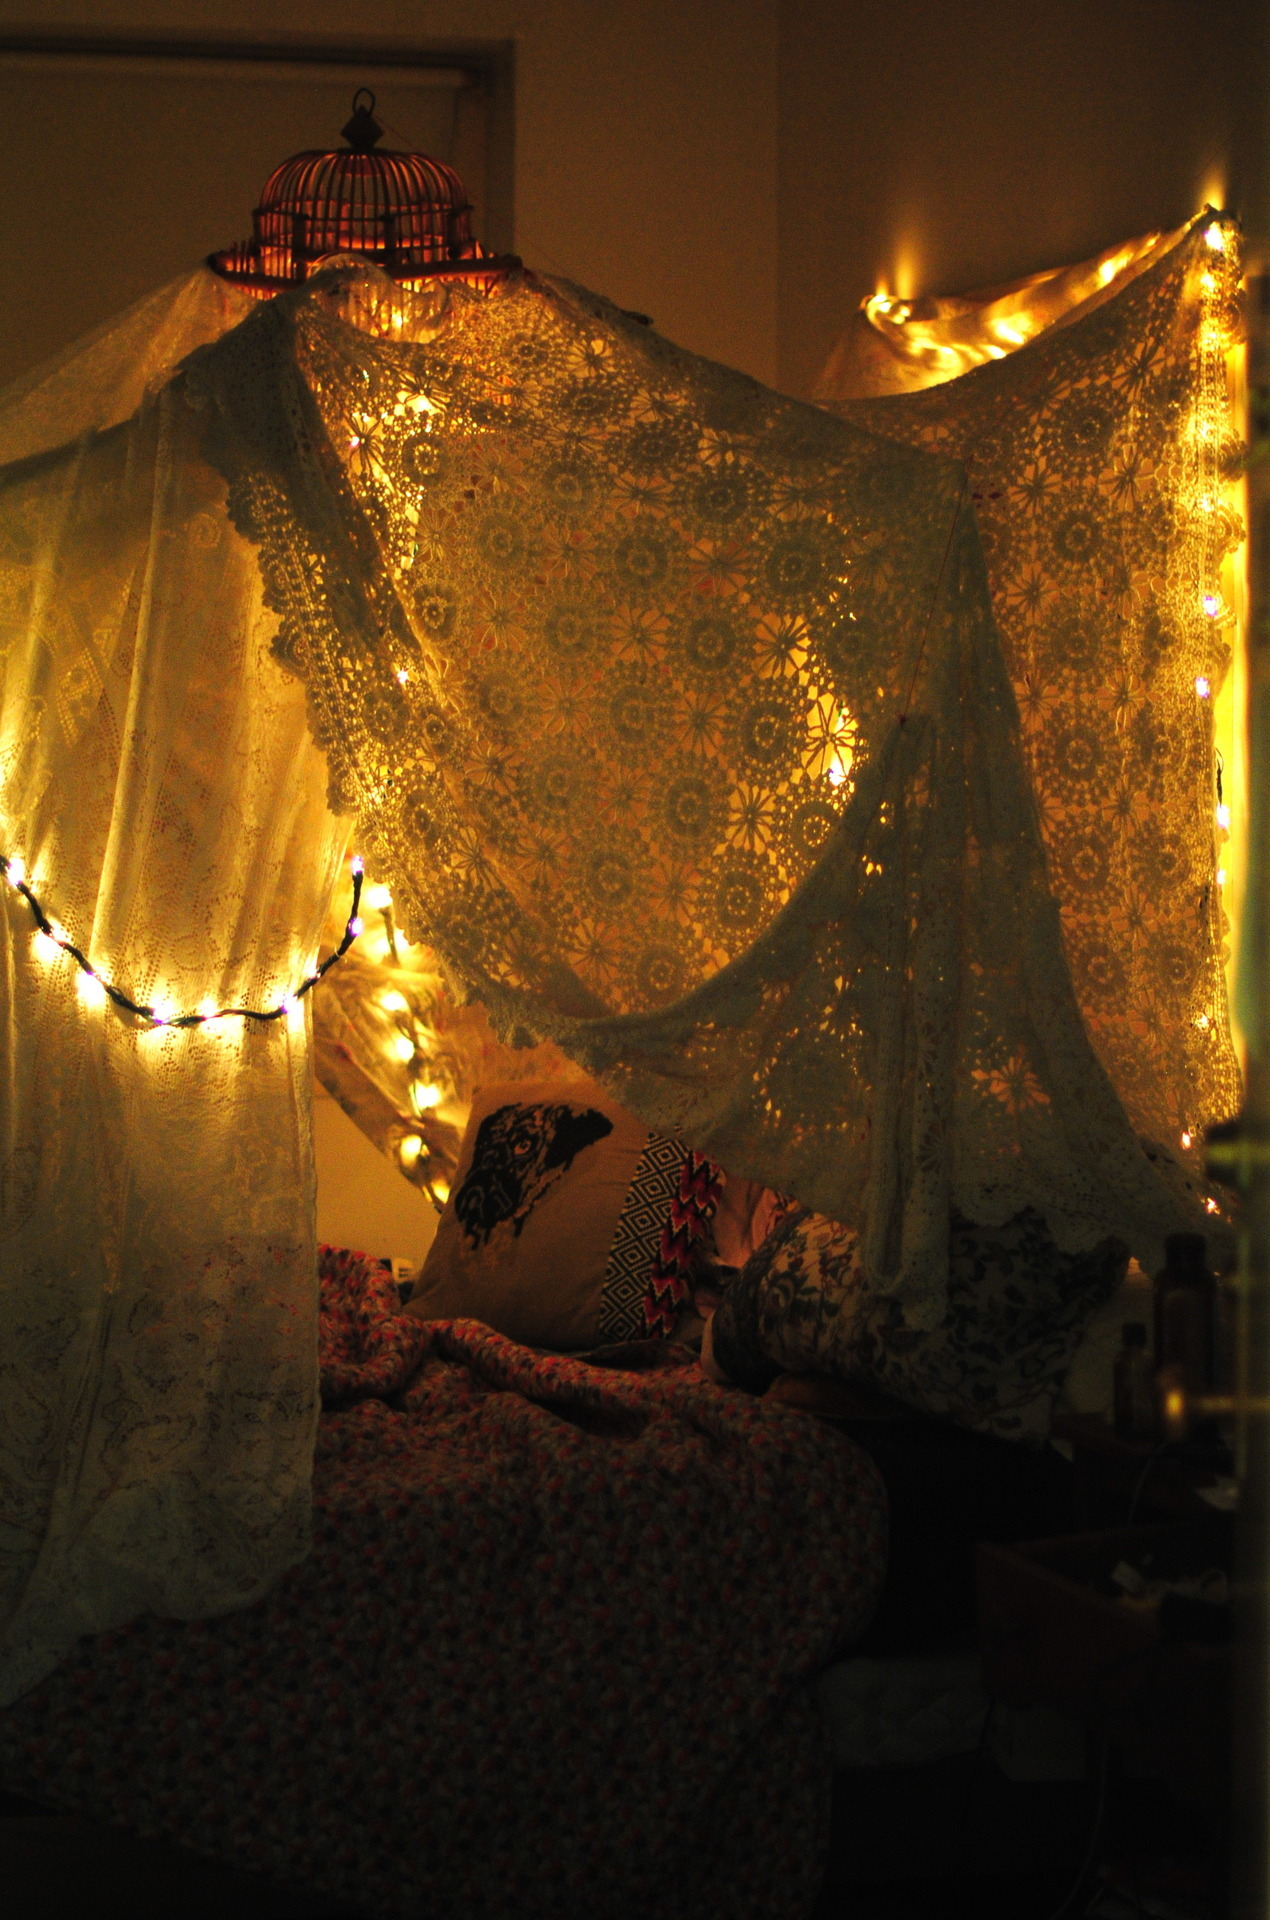 I would like to make a giant blanket fort soon